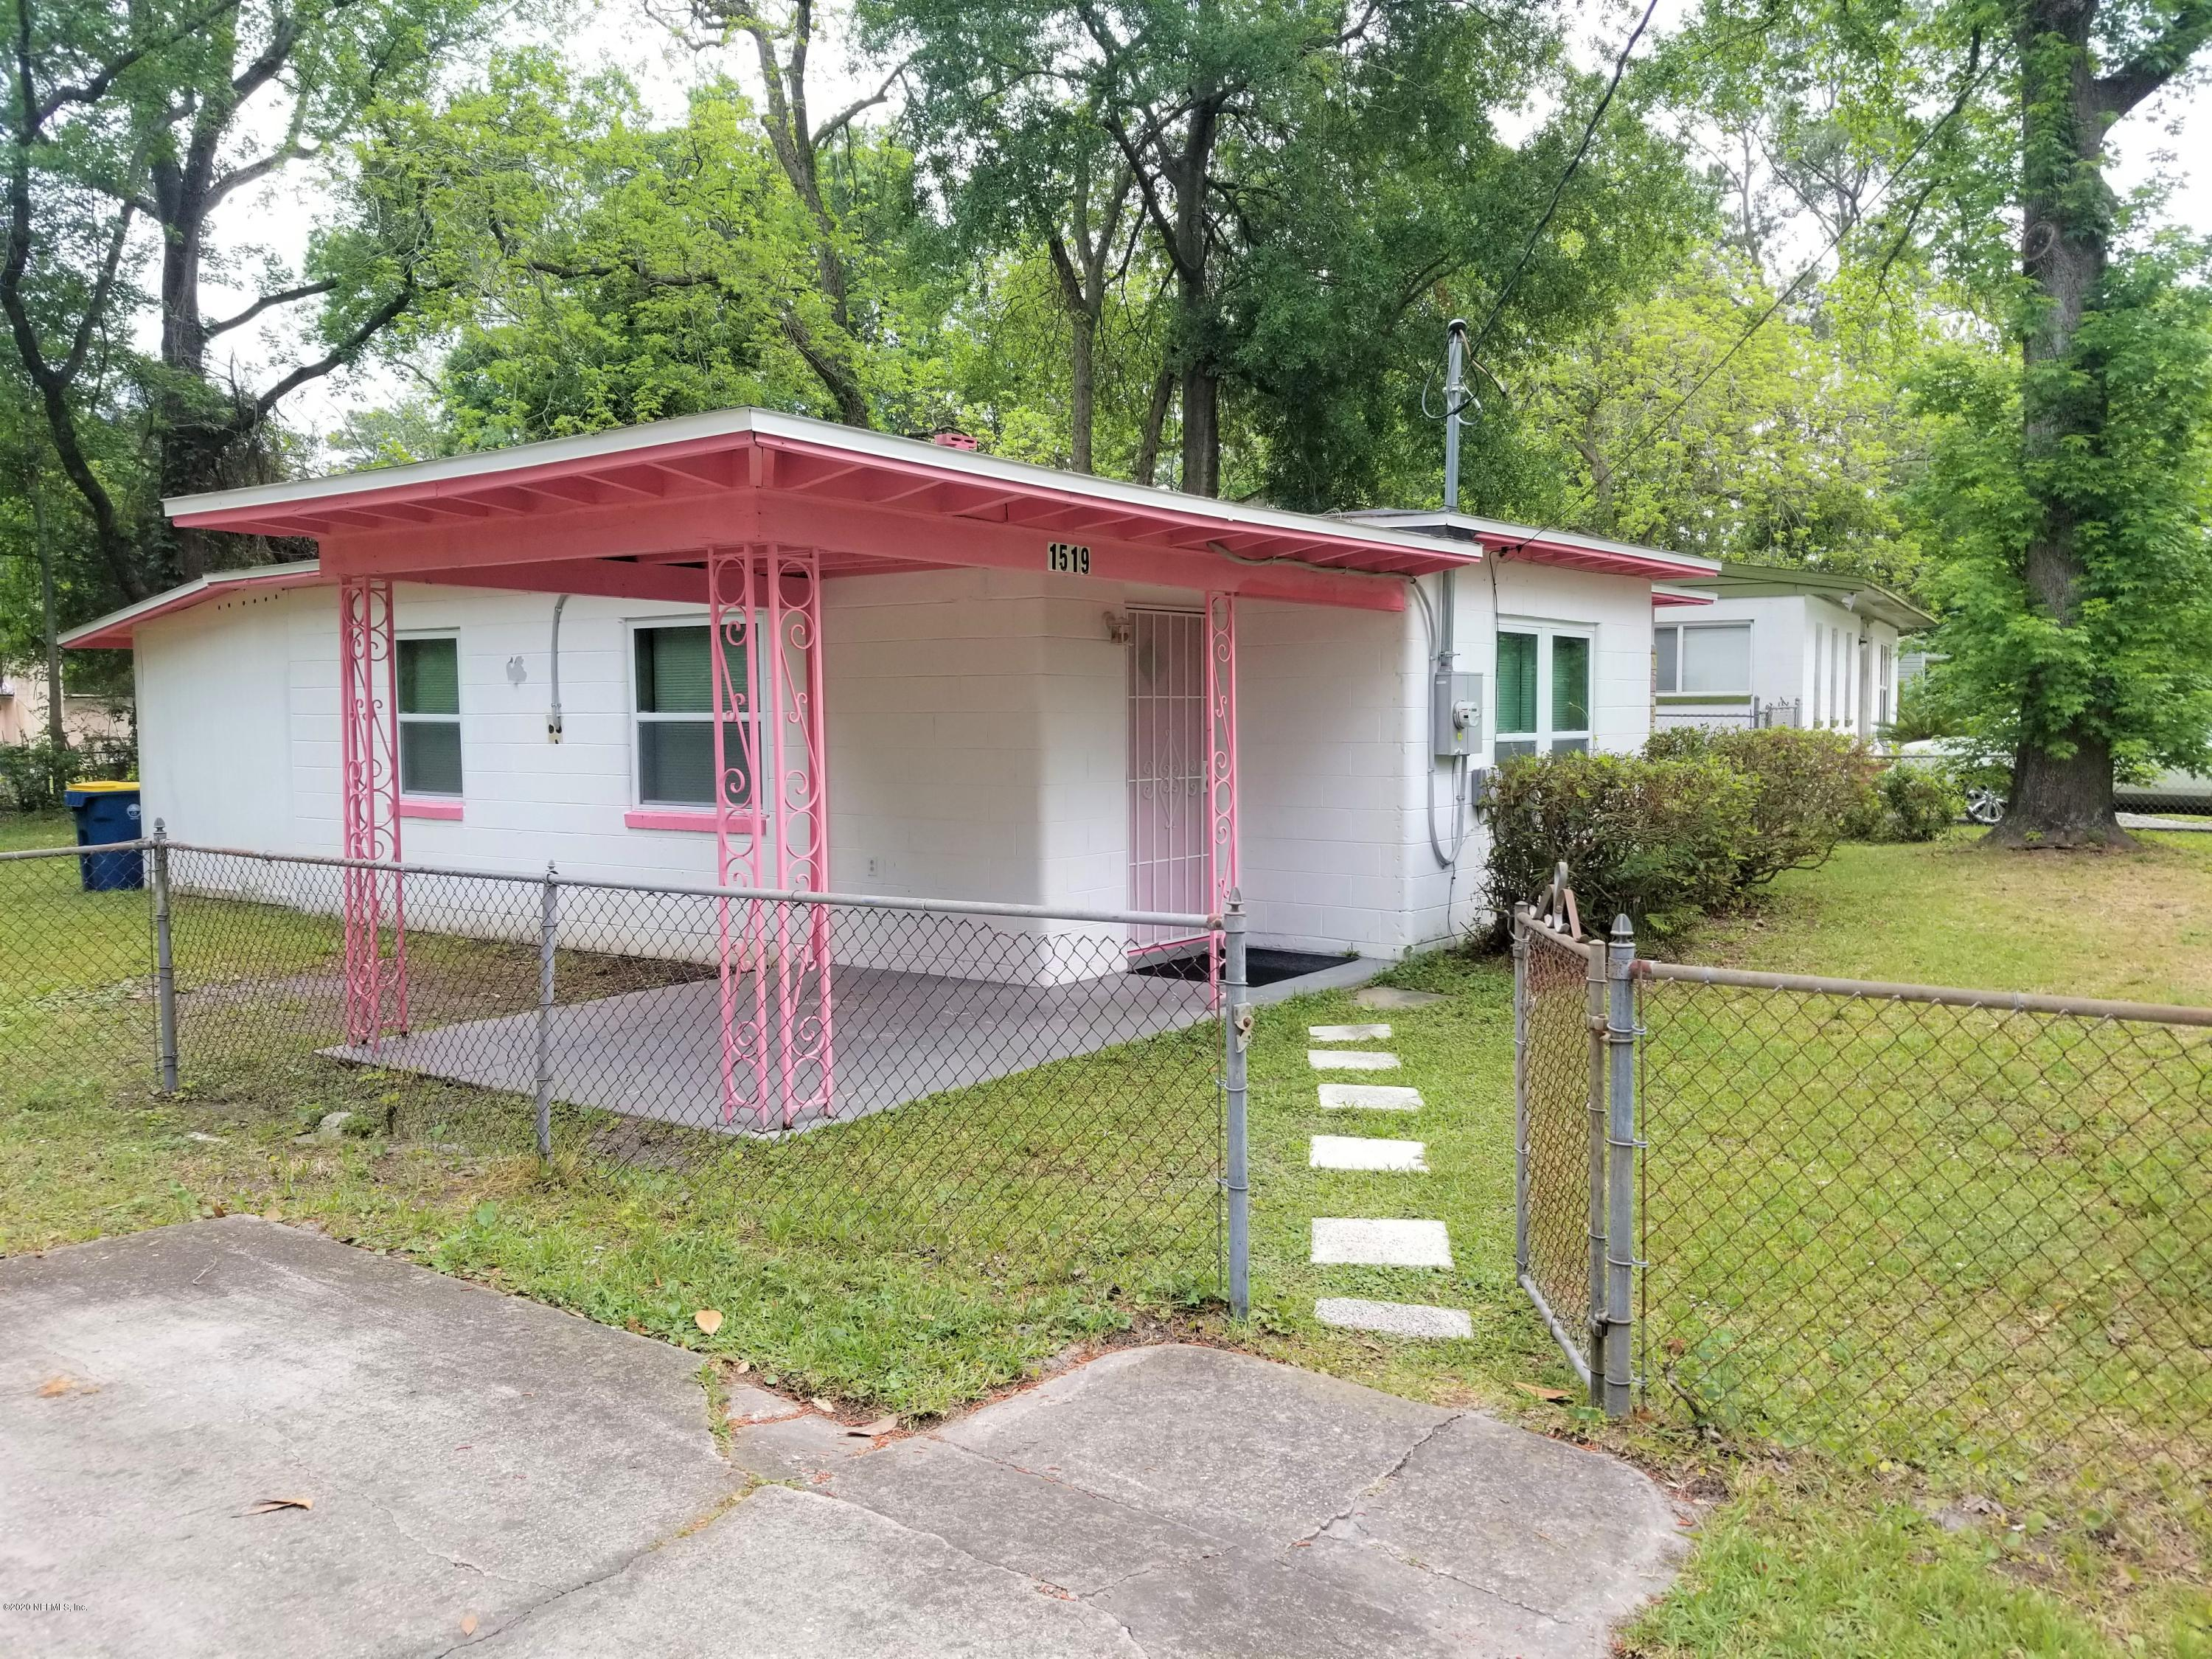 1519 BRETON, JACKSONVILLE, FLORIDA 32208, 2 Bedrooms Bedrooms, ,1 BathroomBathrooms,Residential,For sale,BRETON,1046981